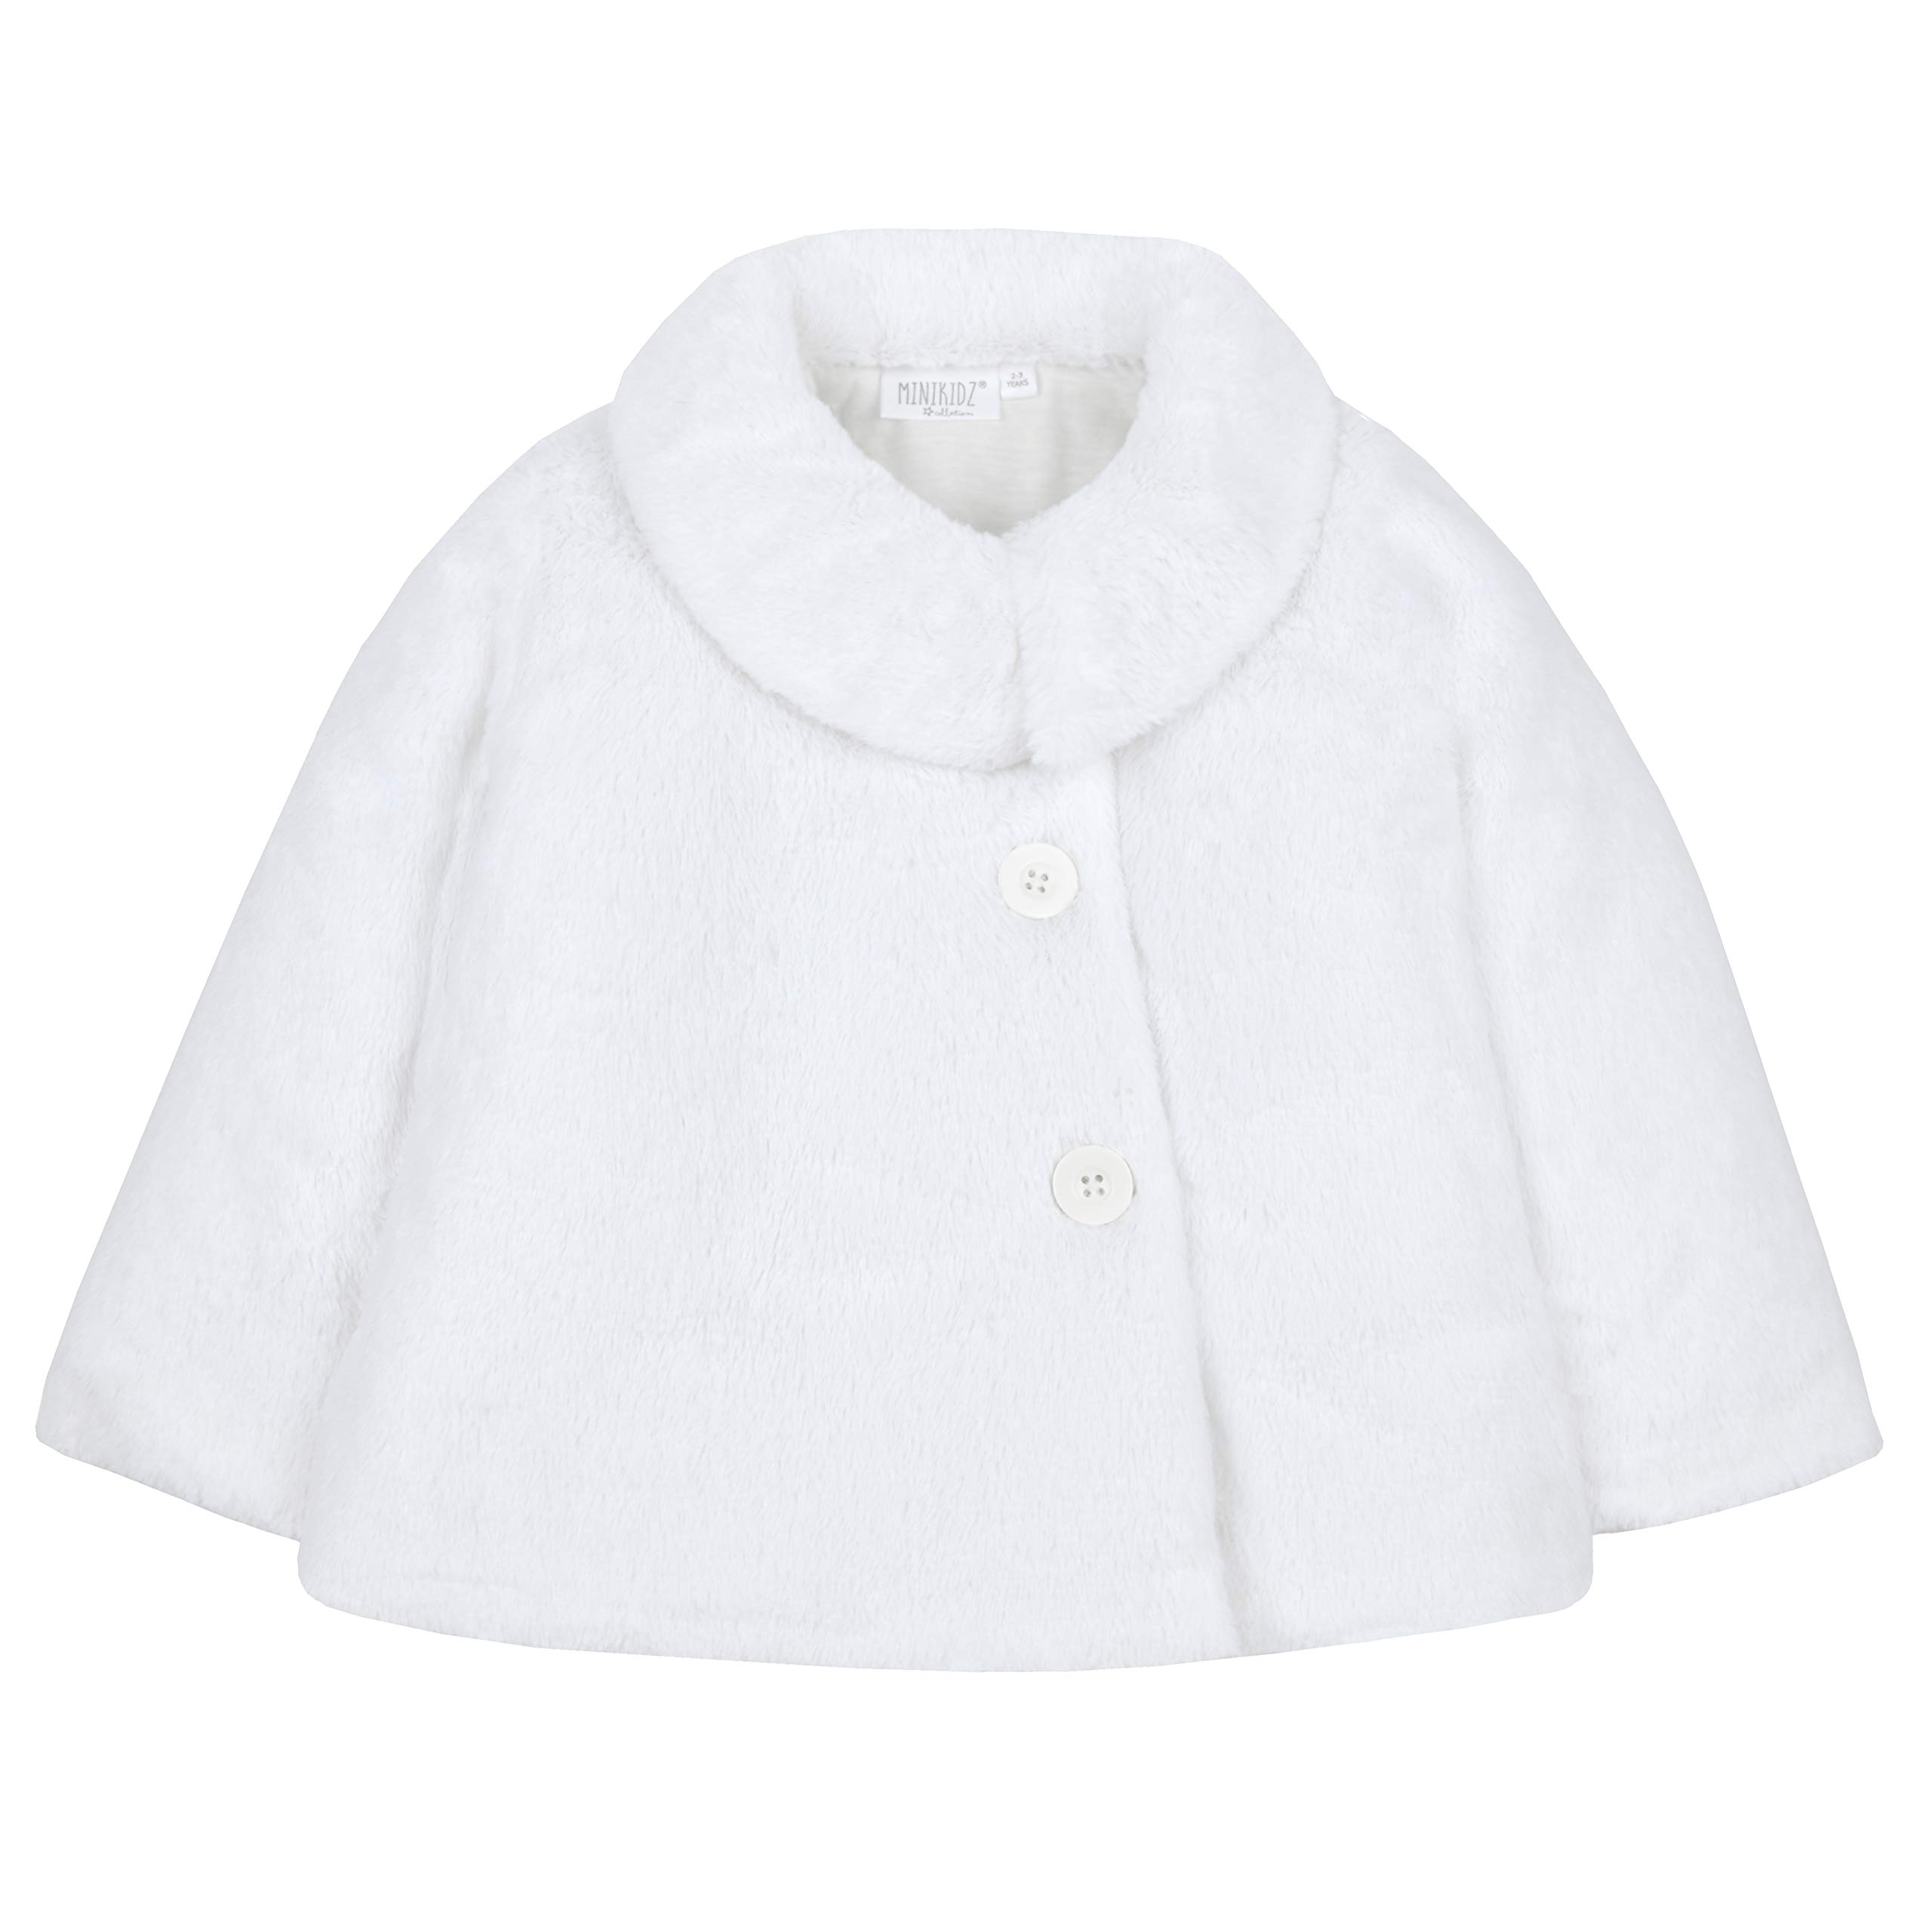 Metzuyan Infant Girls Fluffy Winter Button Up Swing Coat White 3-4 Years